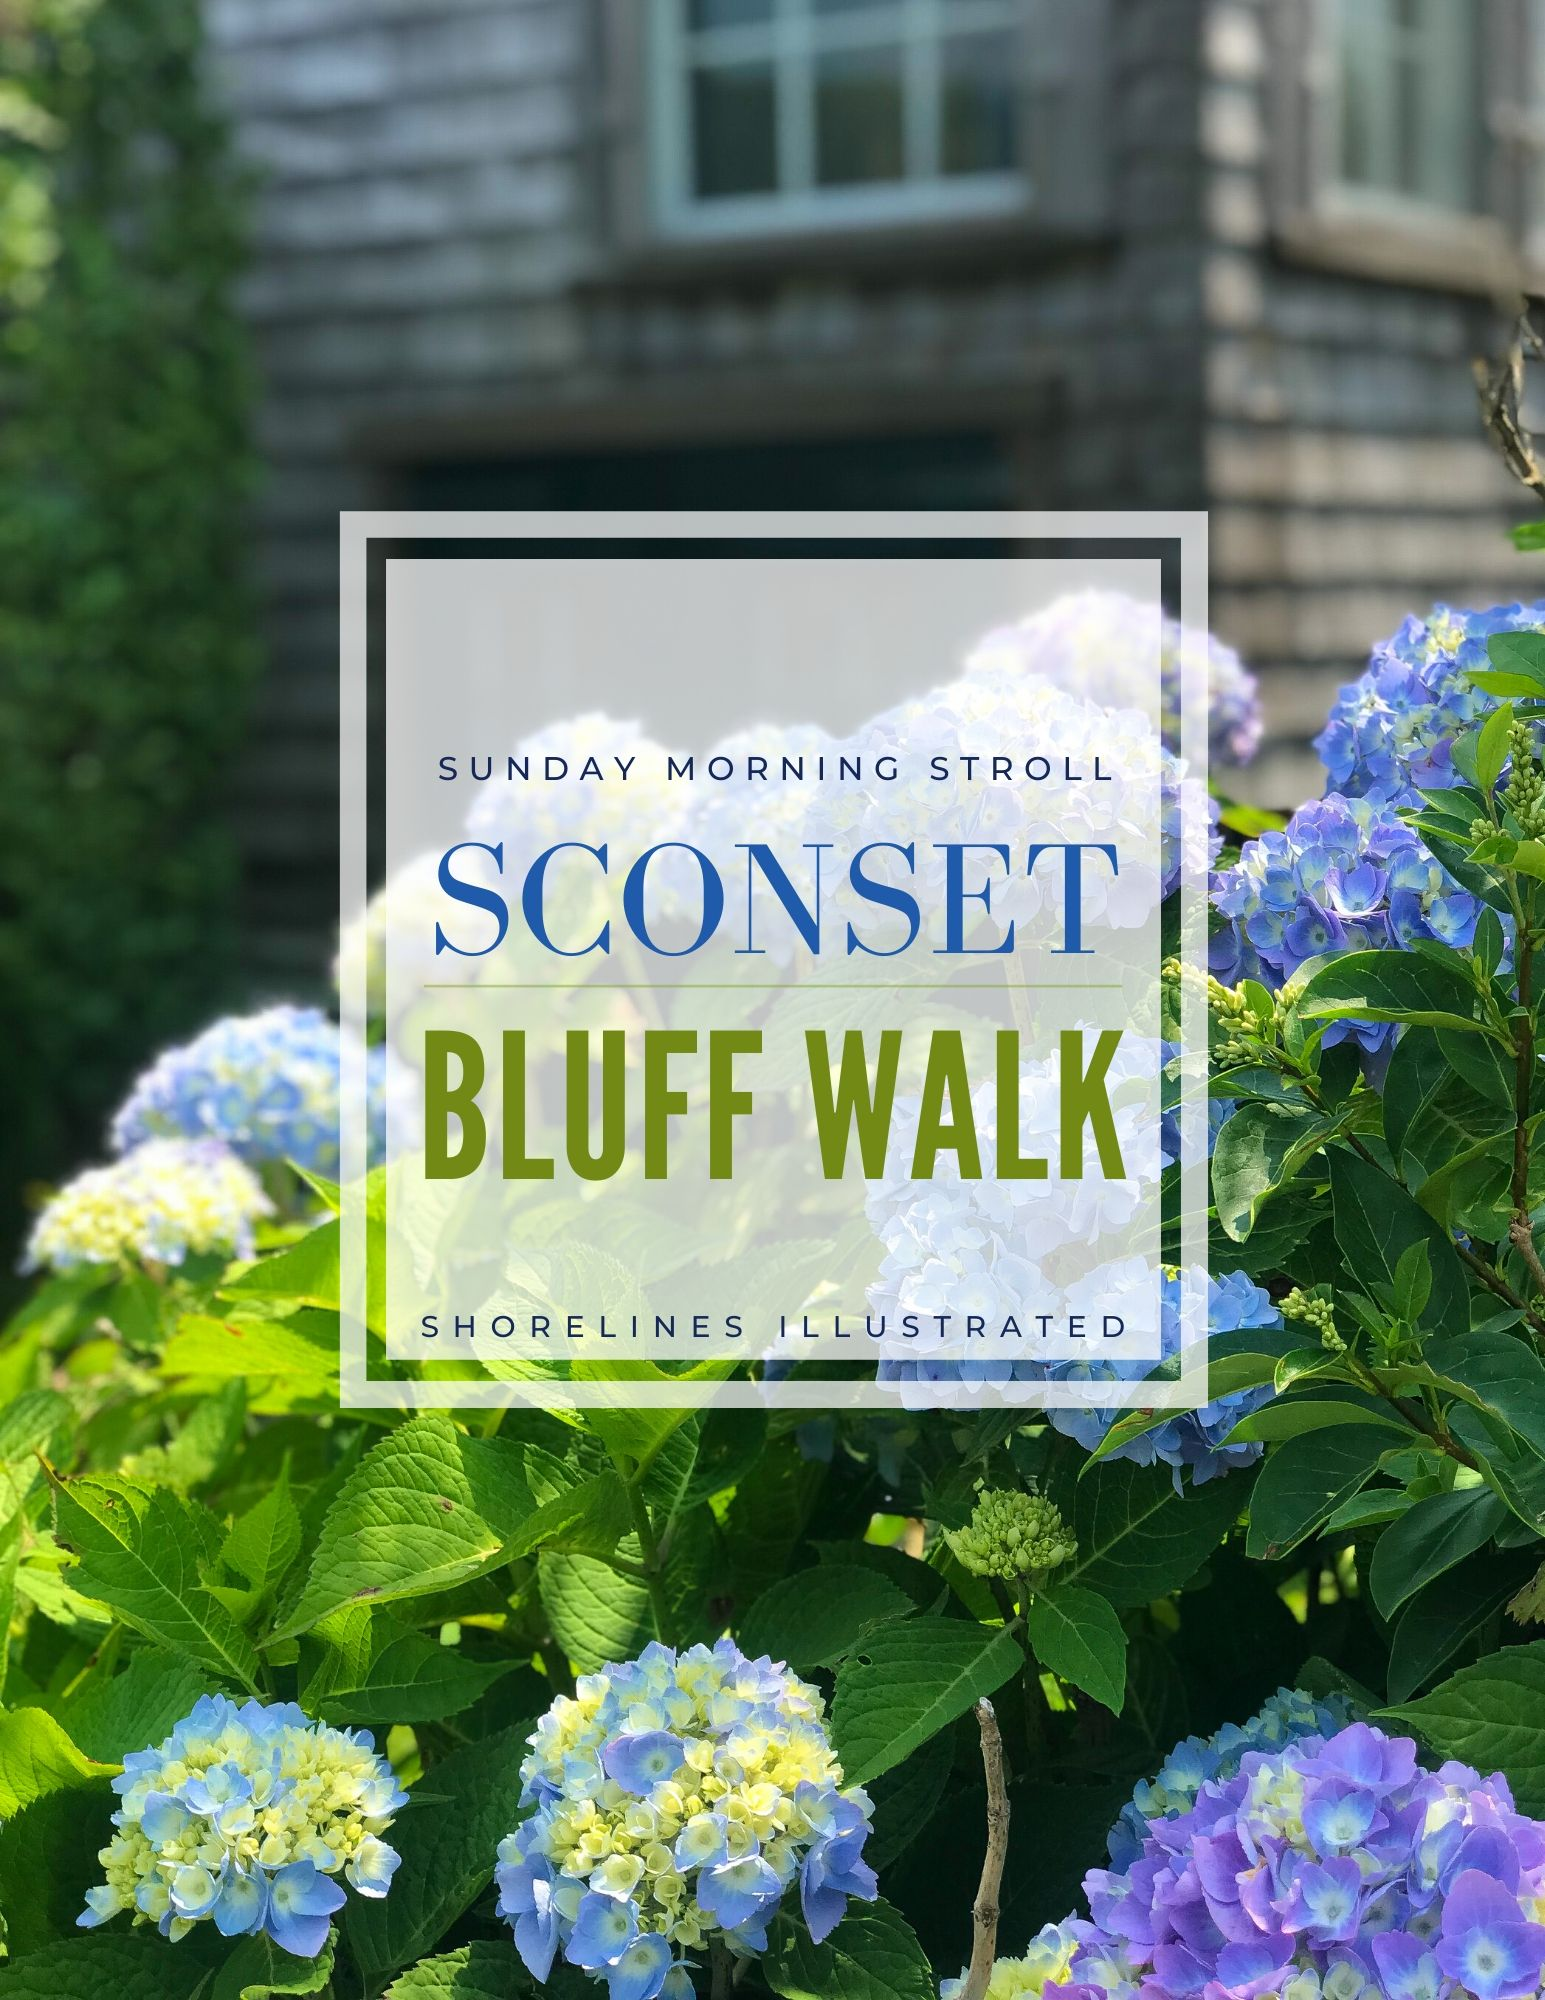 The Sconset Bluff Walk Siasconset Nantucket-1